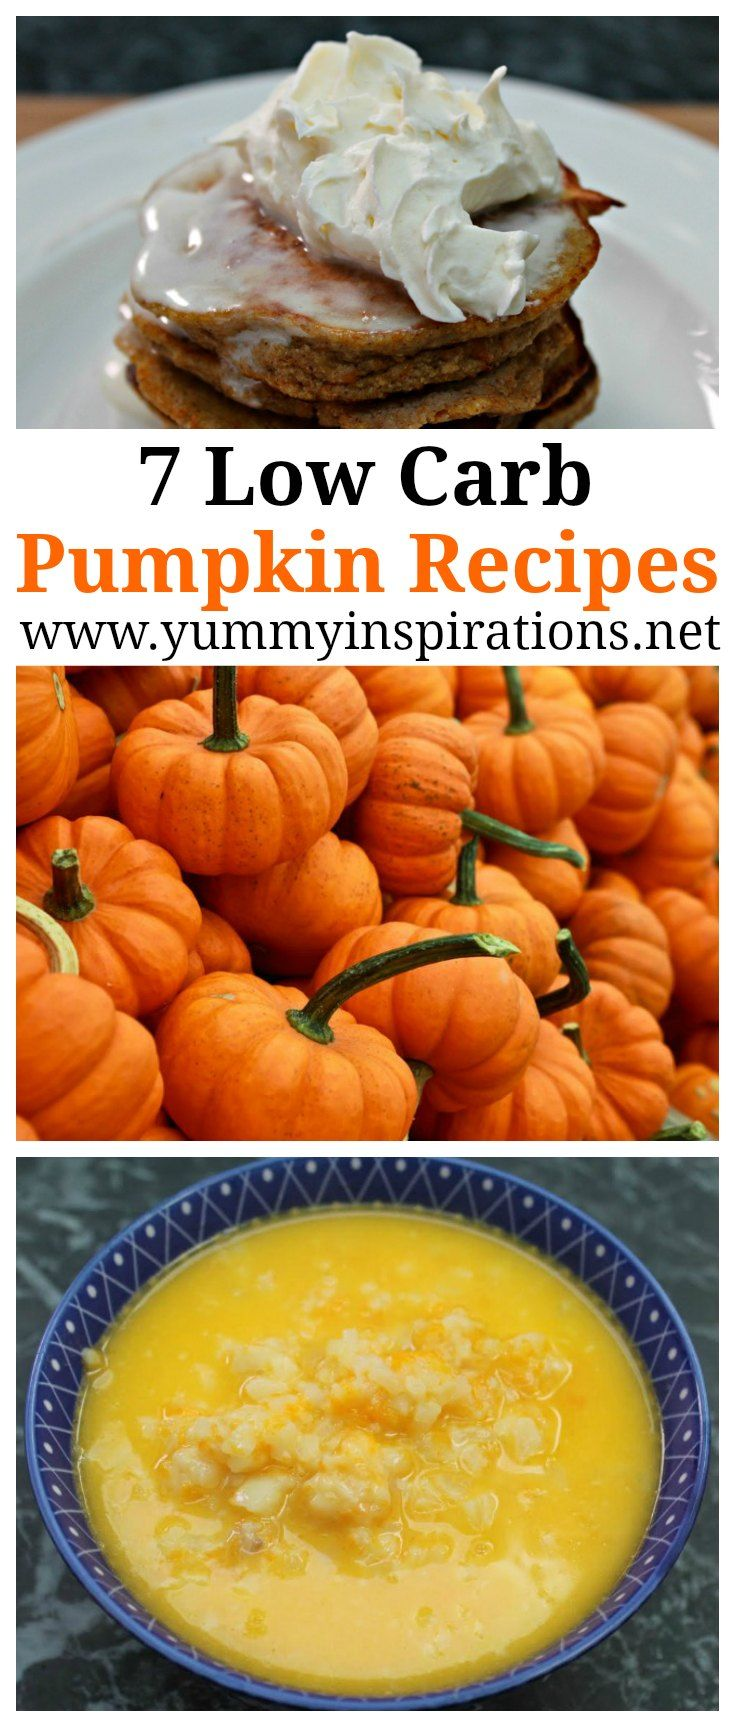 7 Low Carb Pumpkin Recipes - Keto Diet Friendly pumpkin recipe ideas including pancakes, soup, pie, bread, cheesecake and more.